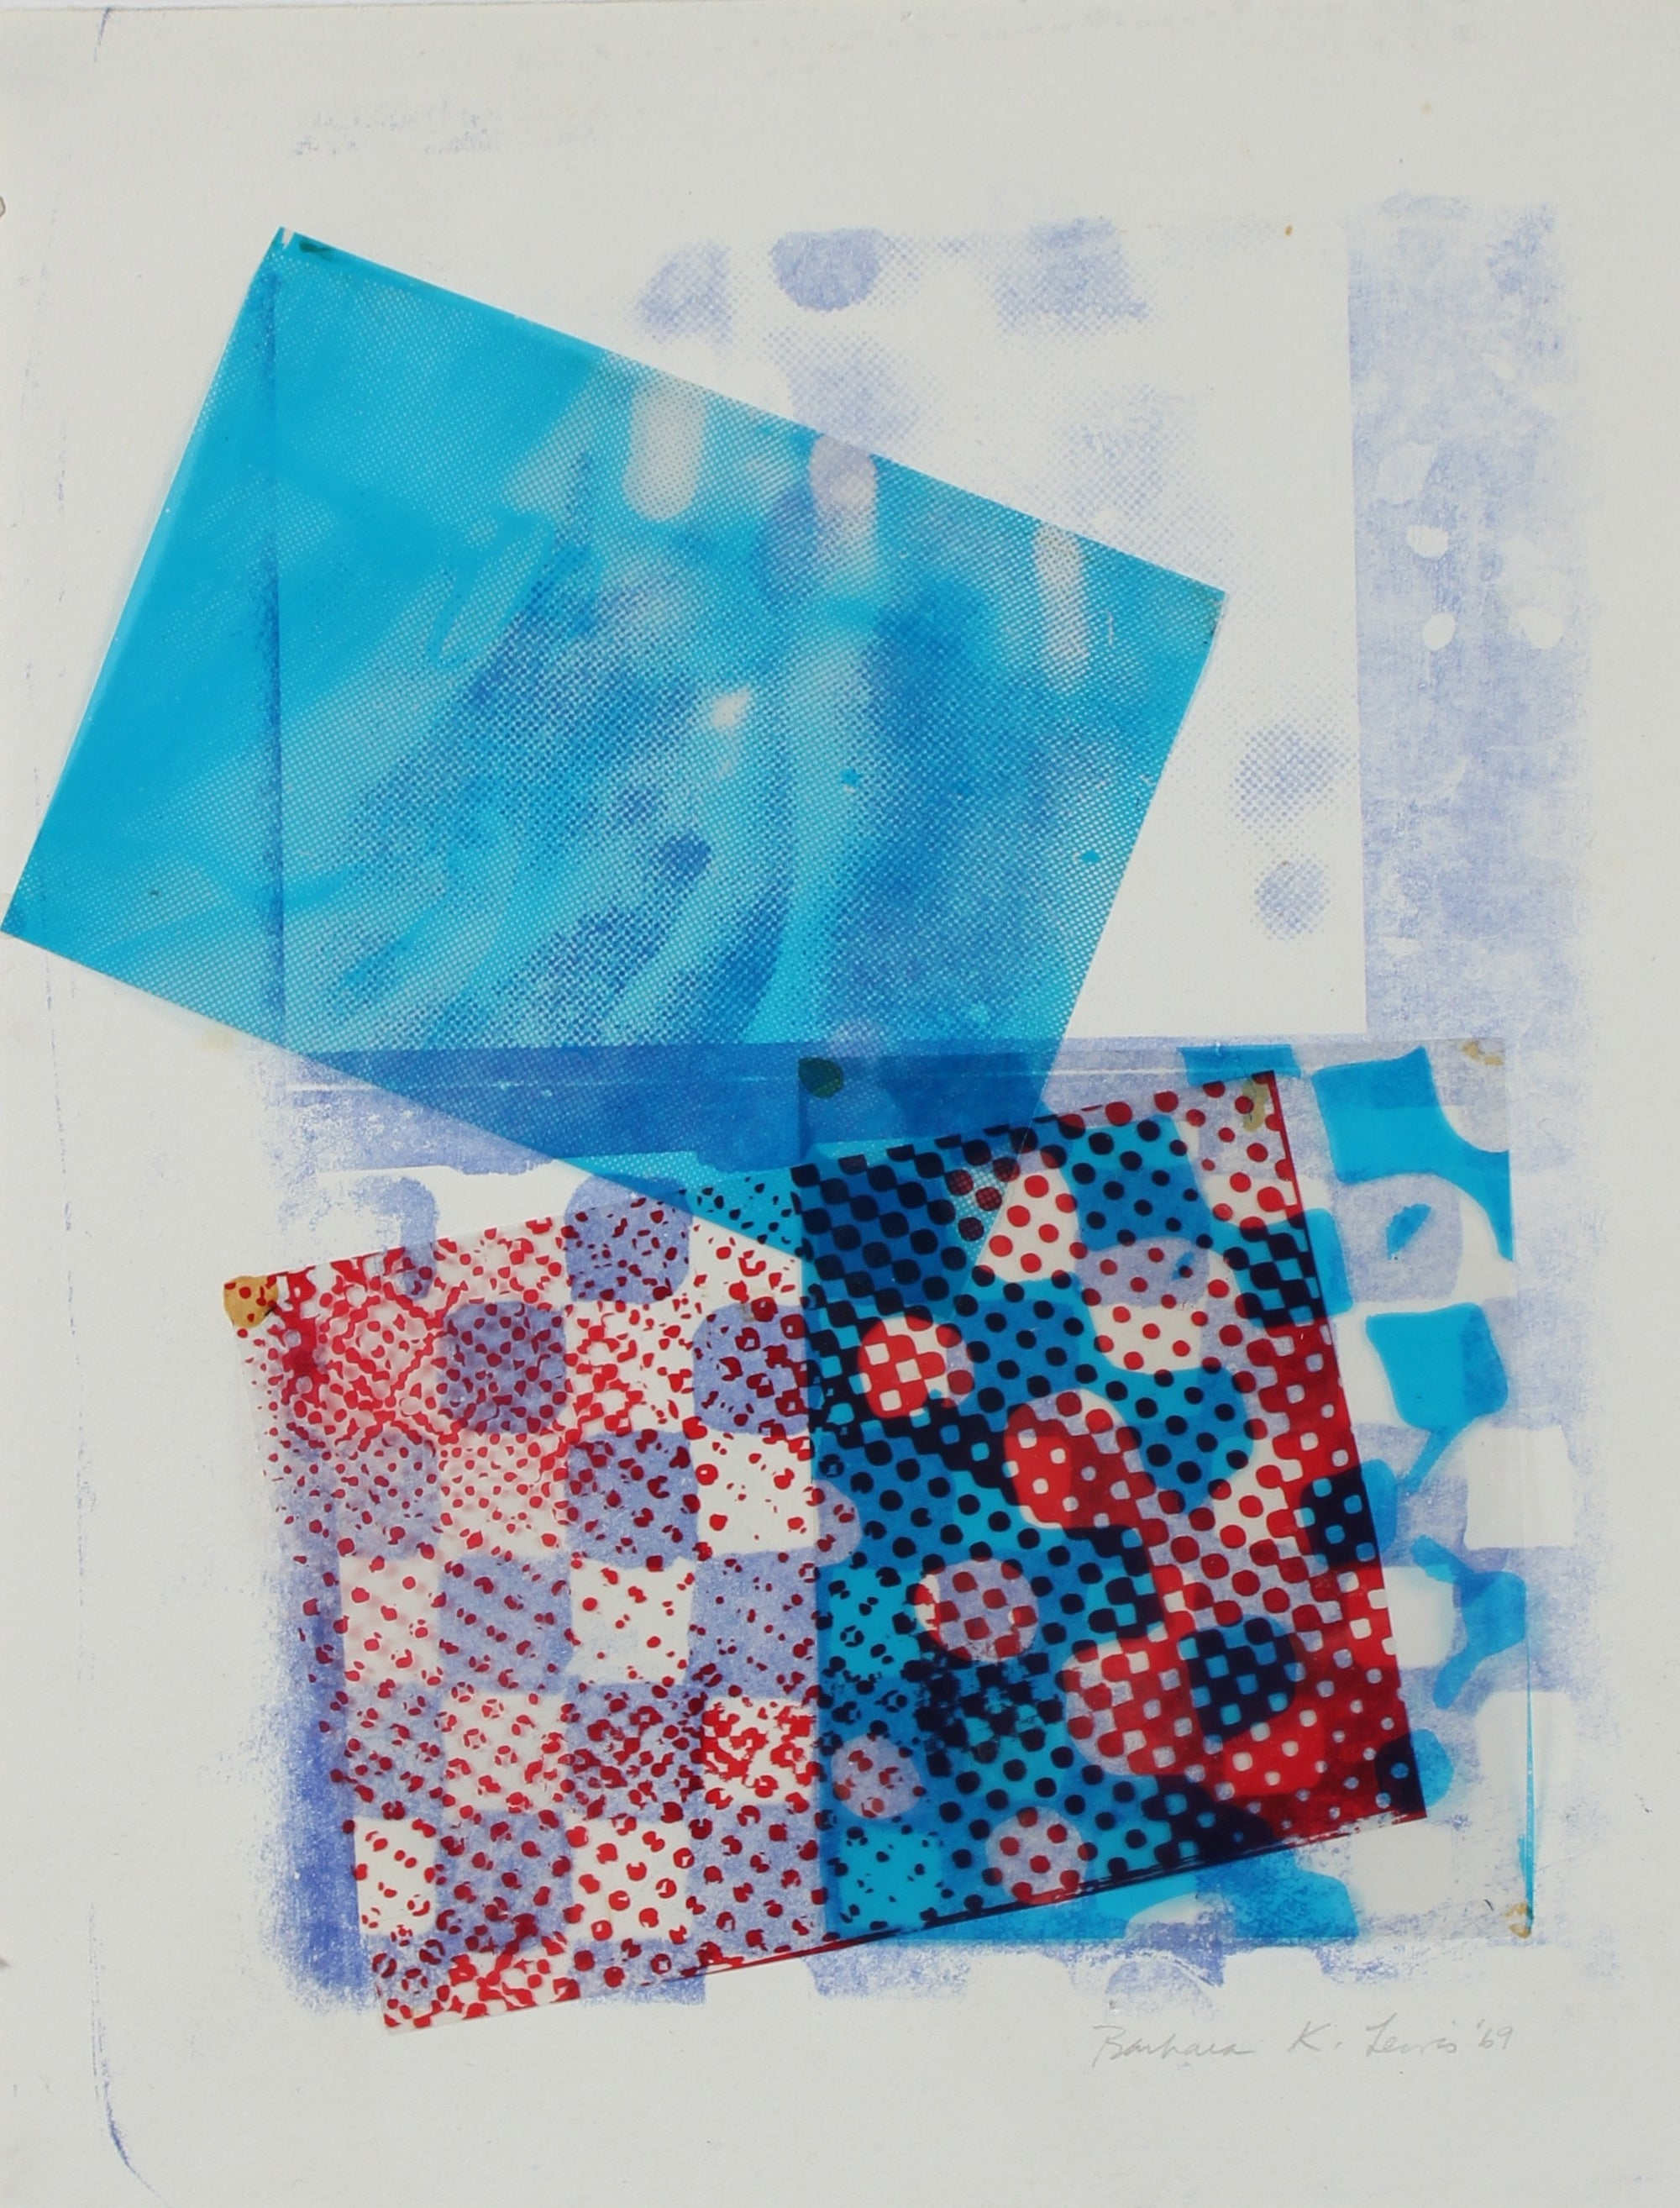 Geometric Mixed Media Photograph & Acetate Collage, 1969<br><br>#96331